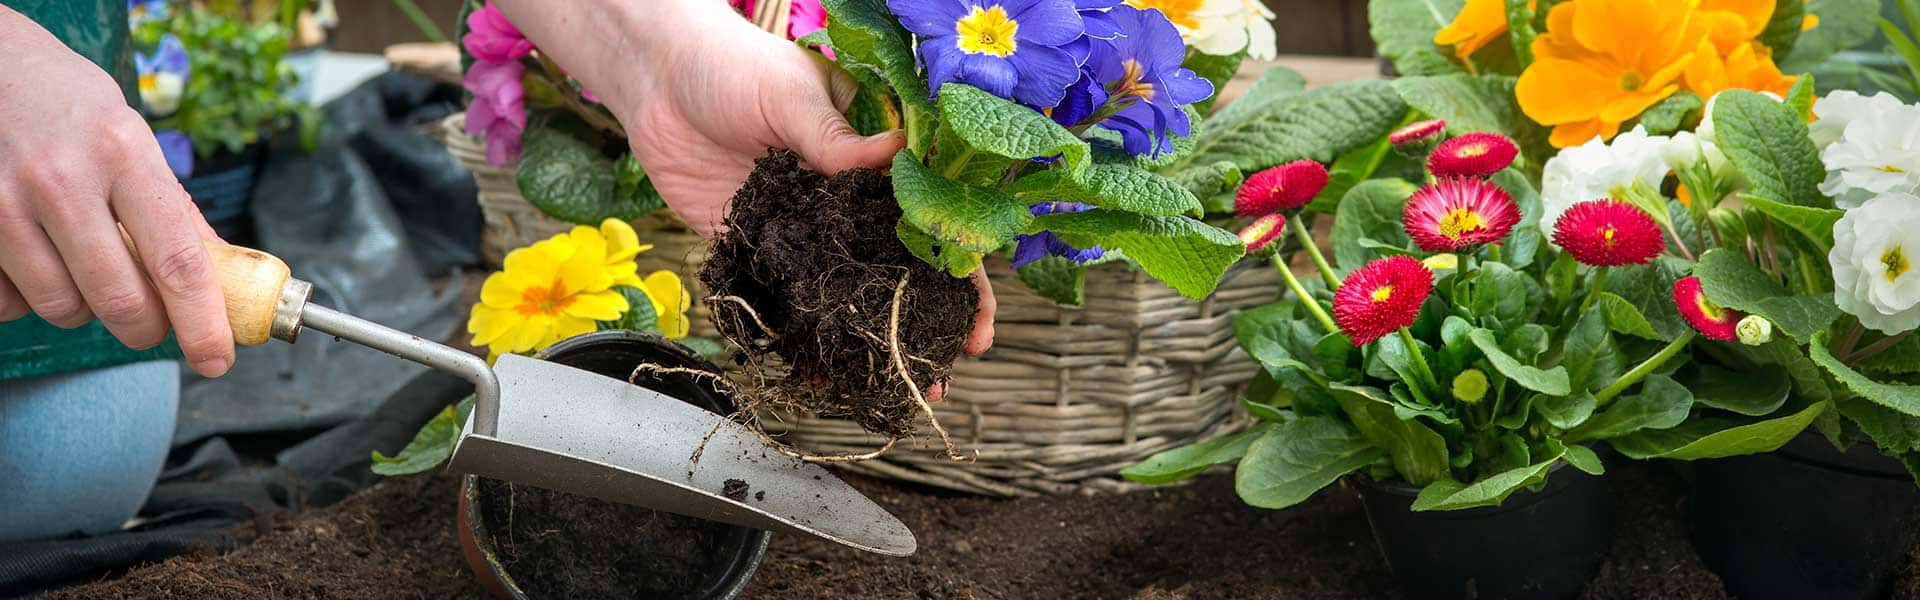 Save yourself time and let us do the gardening for you!